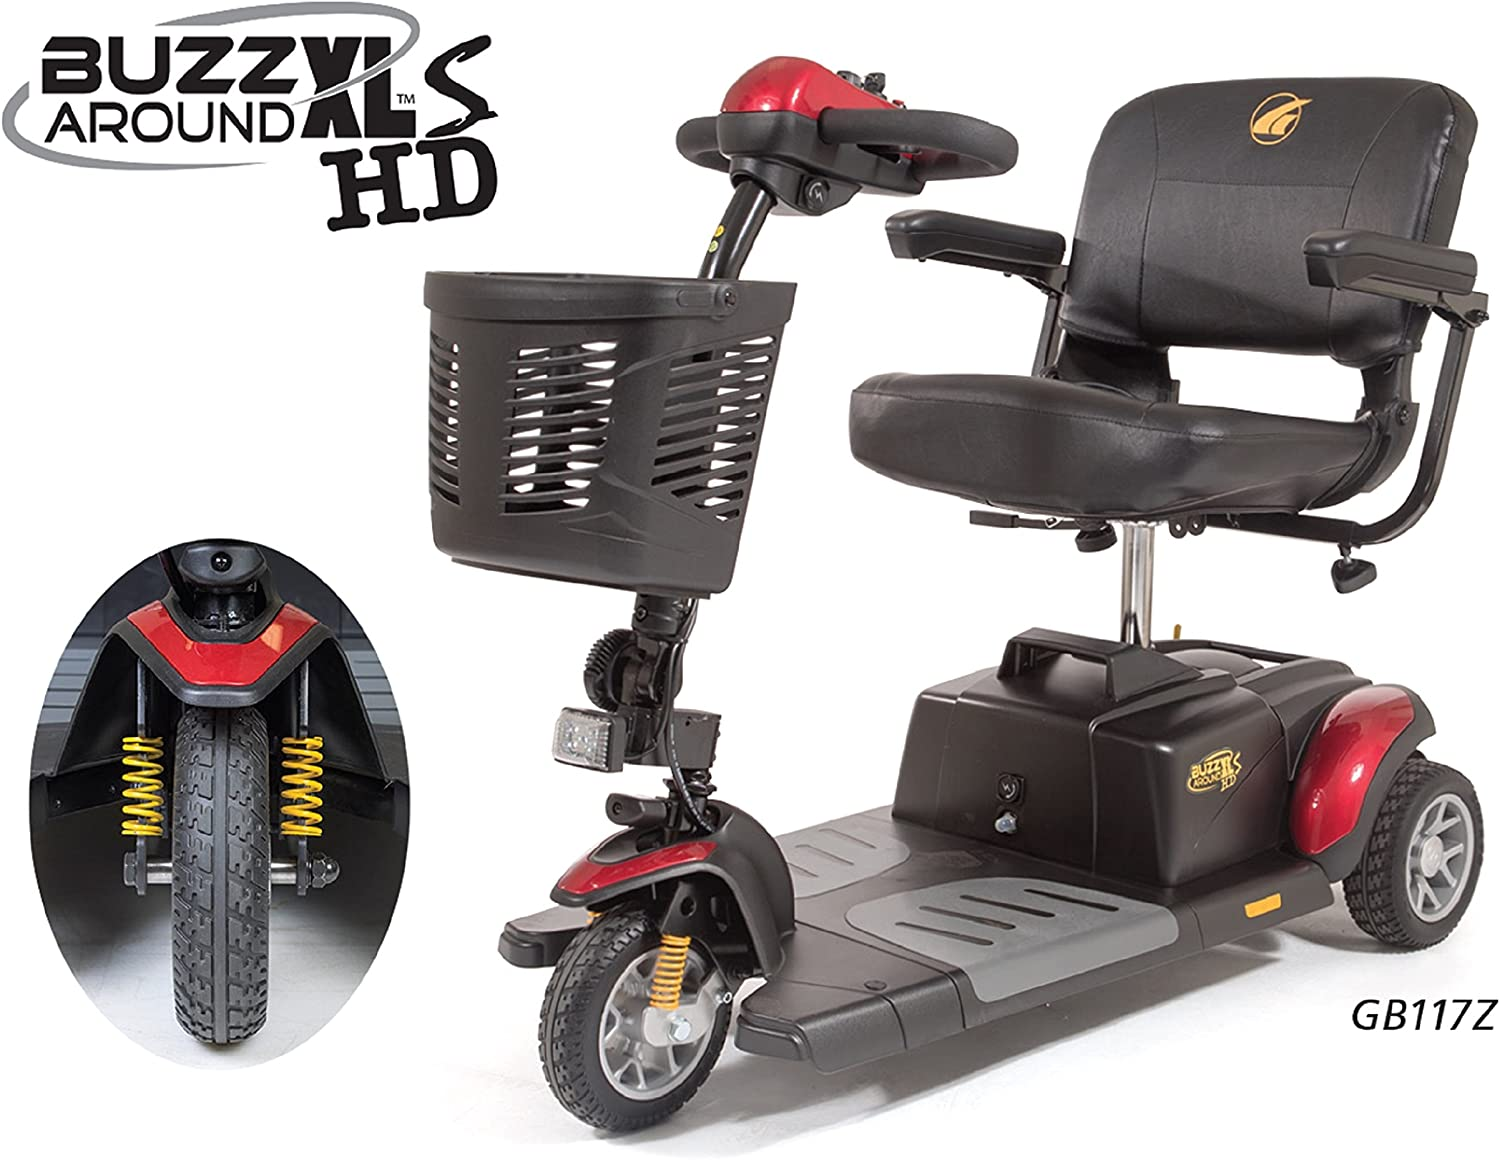 Golden Technologies - Buzzaround XLS HD - Travel Scooter - 3-wheel - Red